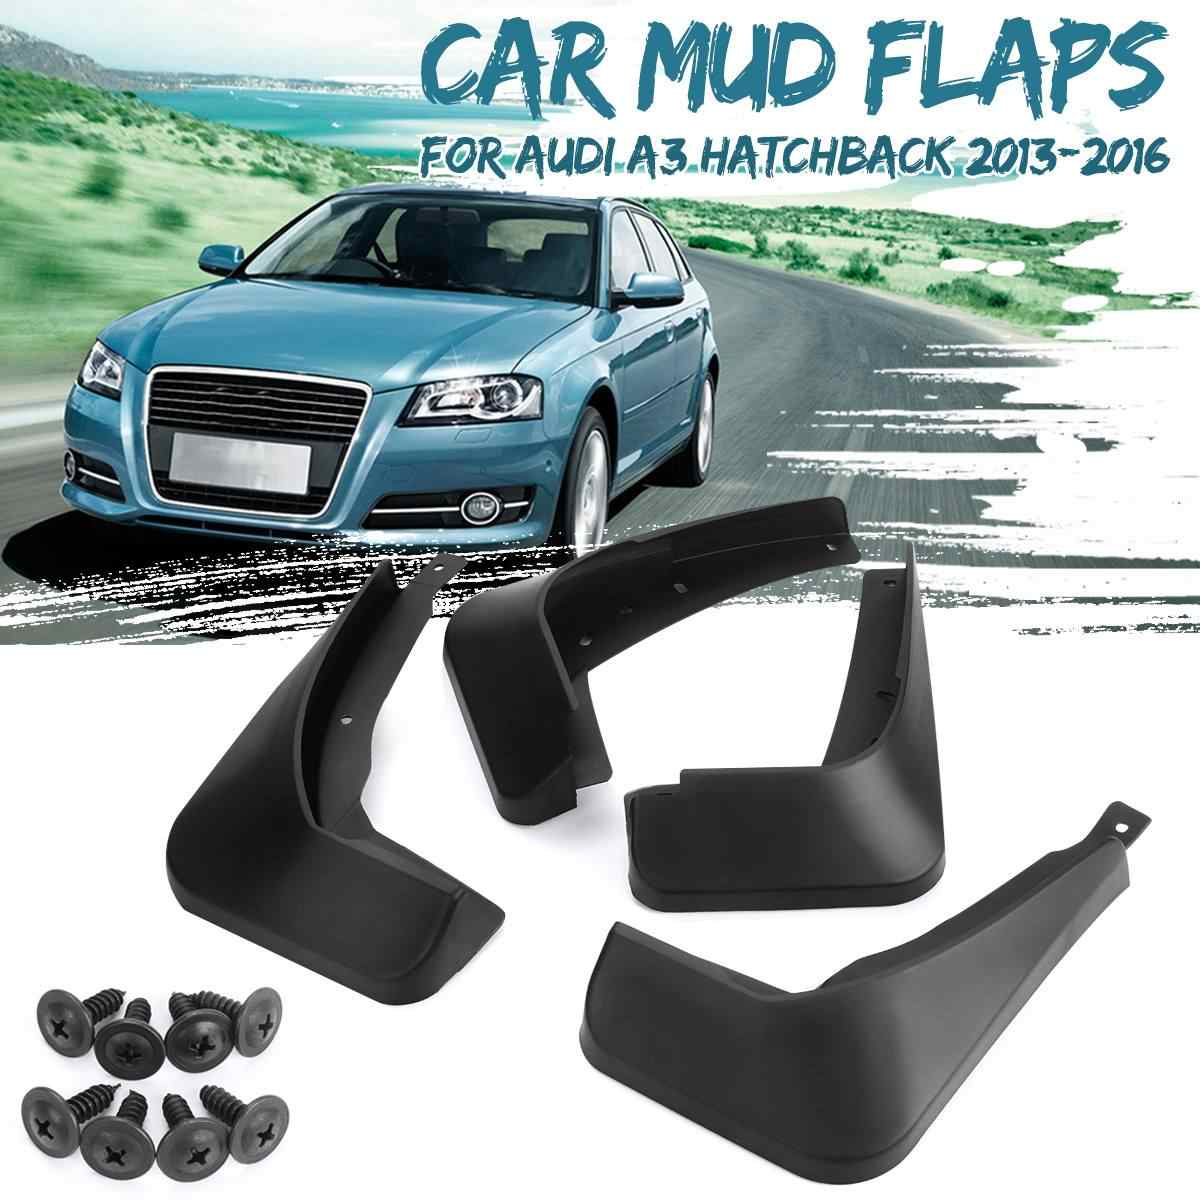 CarMud フラップ Mudflaps Splash Guards フェンダーアウディ A3 A4 A6 (8E 8 1080P B6 B7 C6) q5 Q7 2002-2019